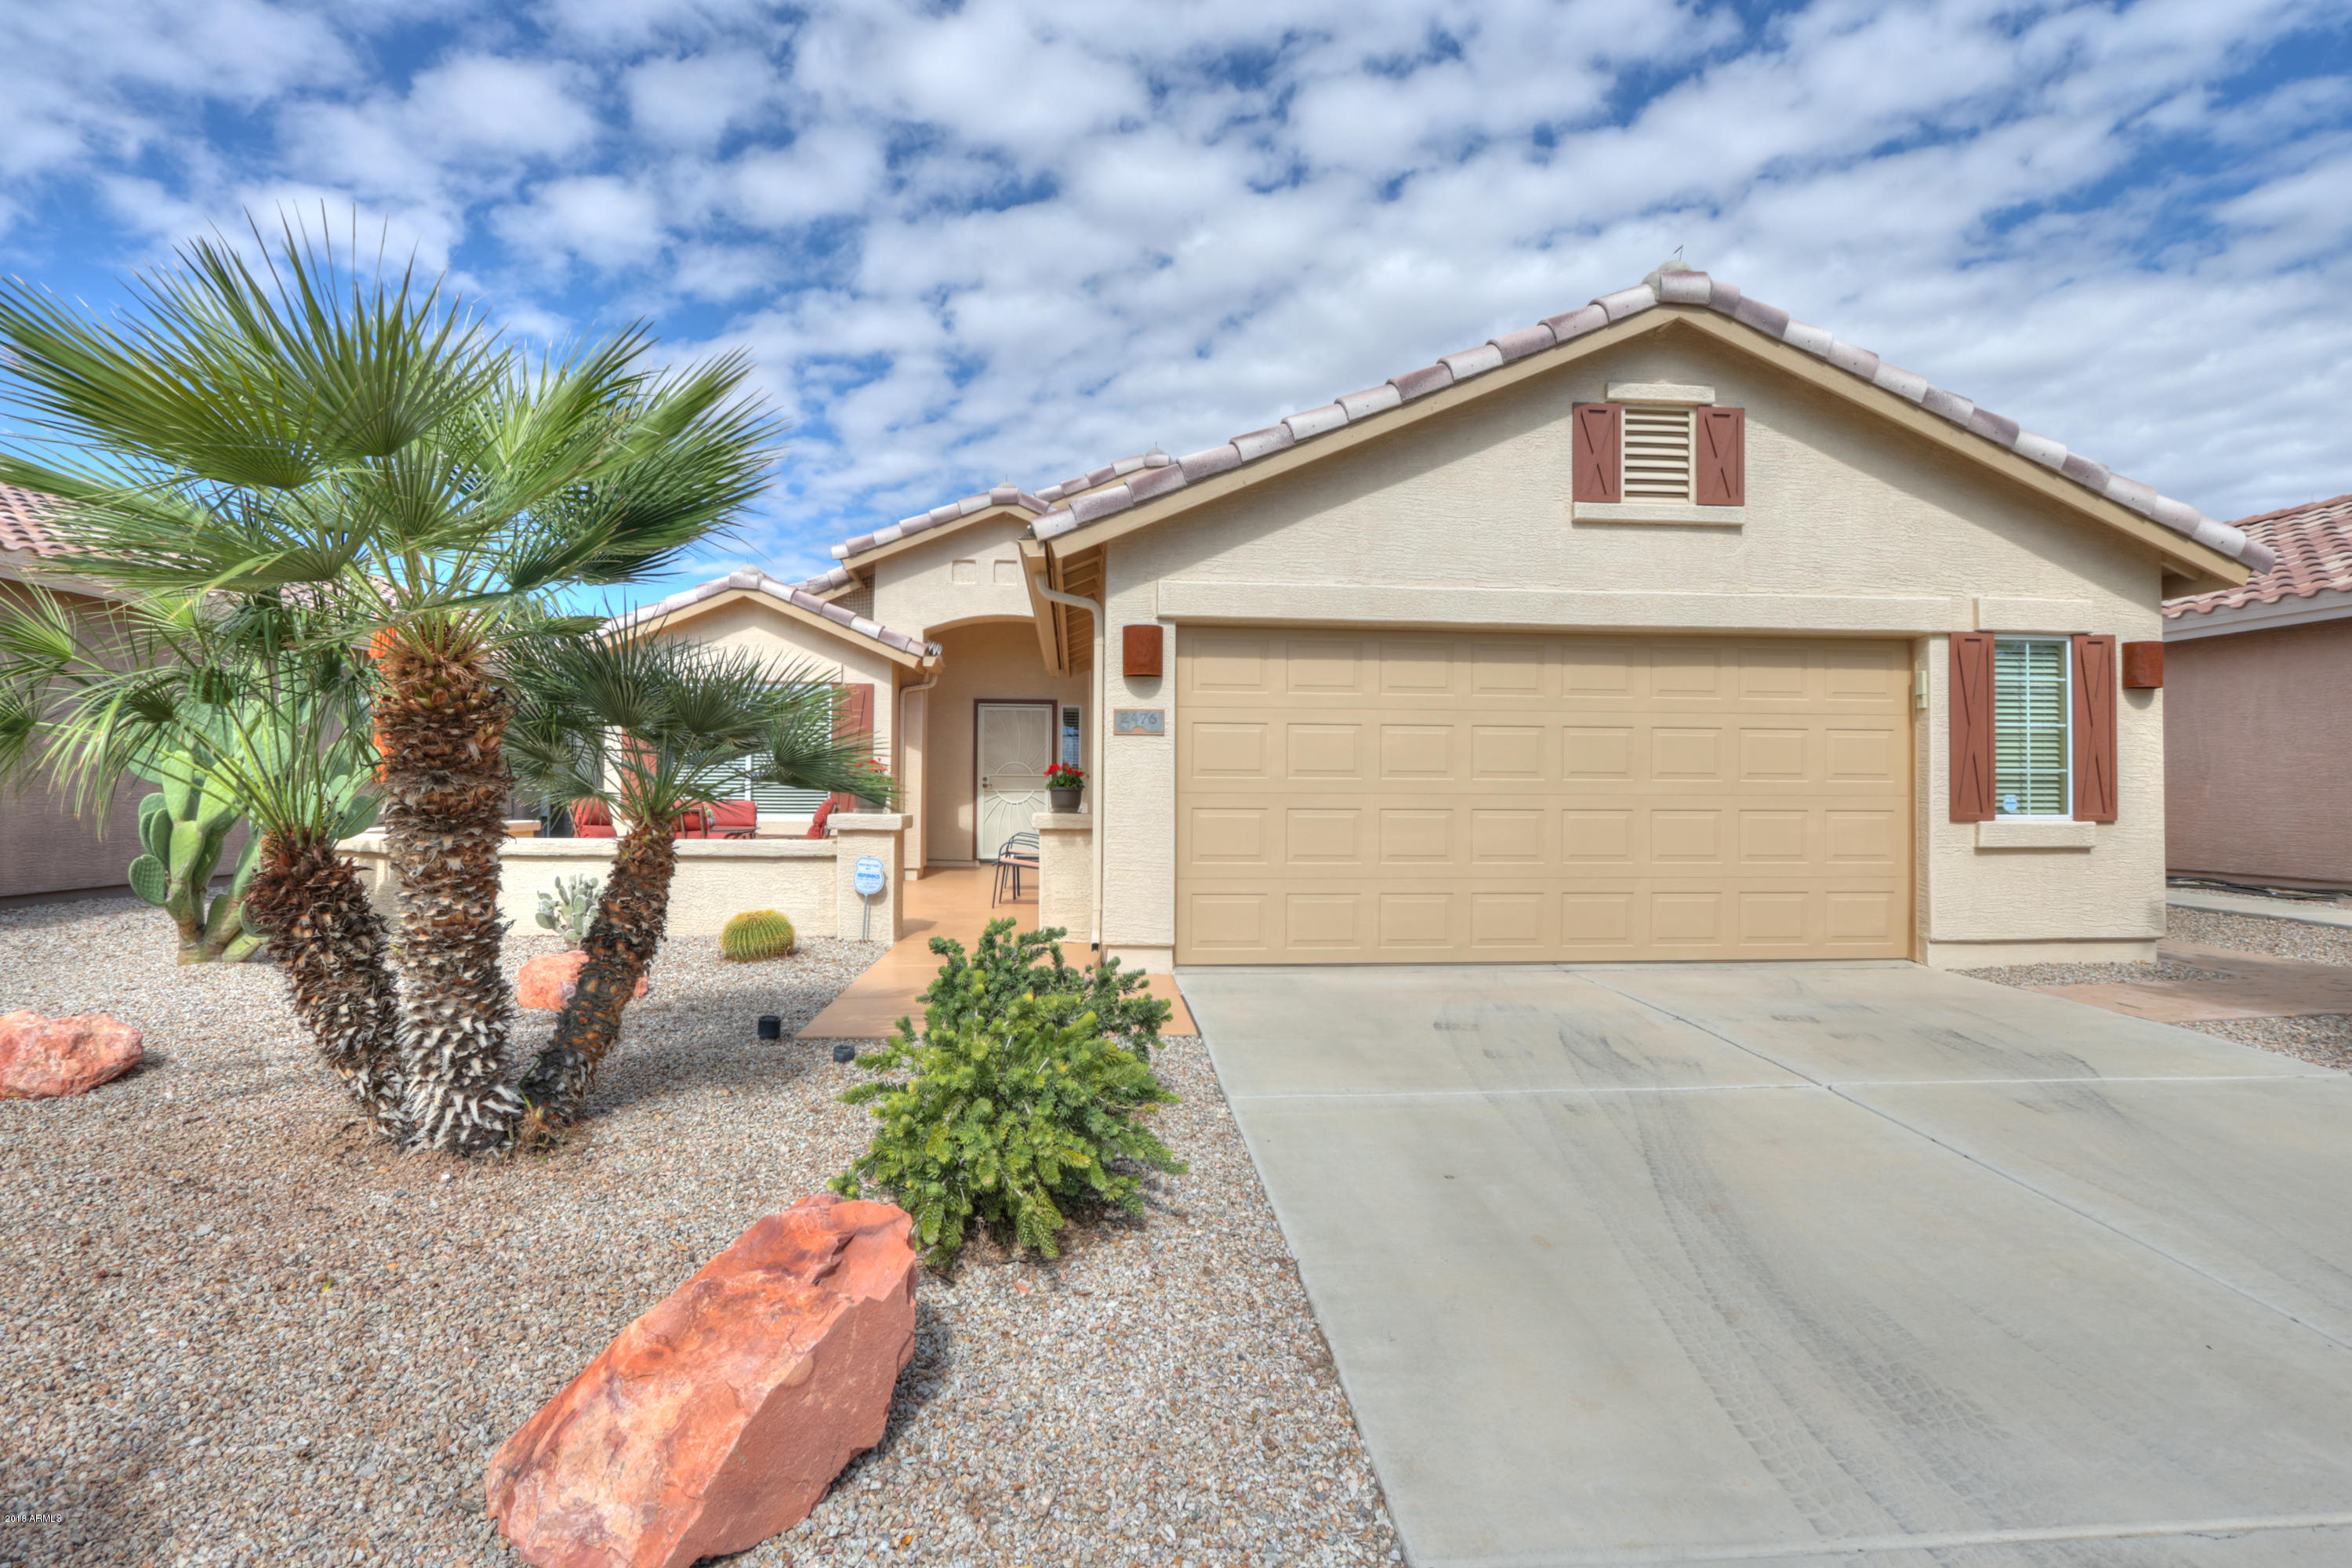 Photo for 2476 E Fiesta Drive, Casa Grande, AZ 85194 (MLS # 5834415)